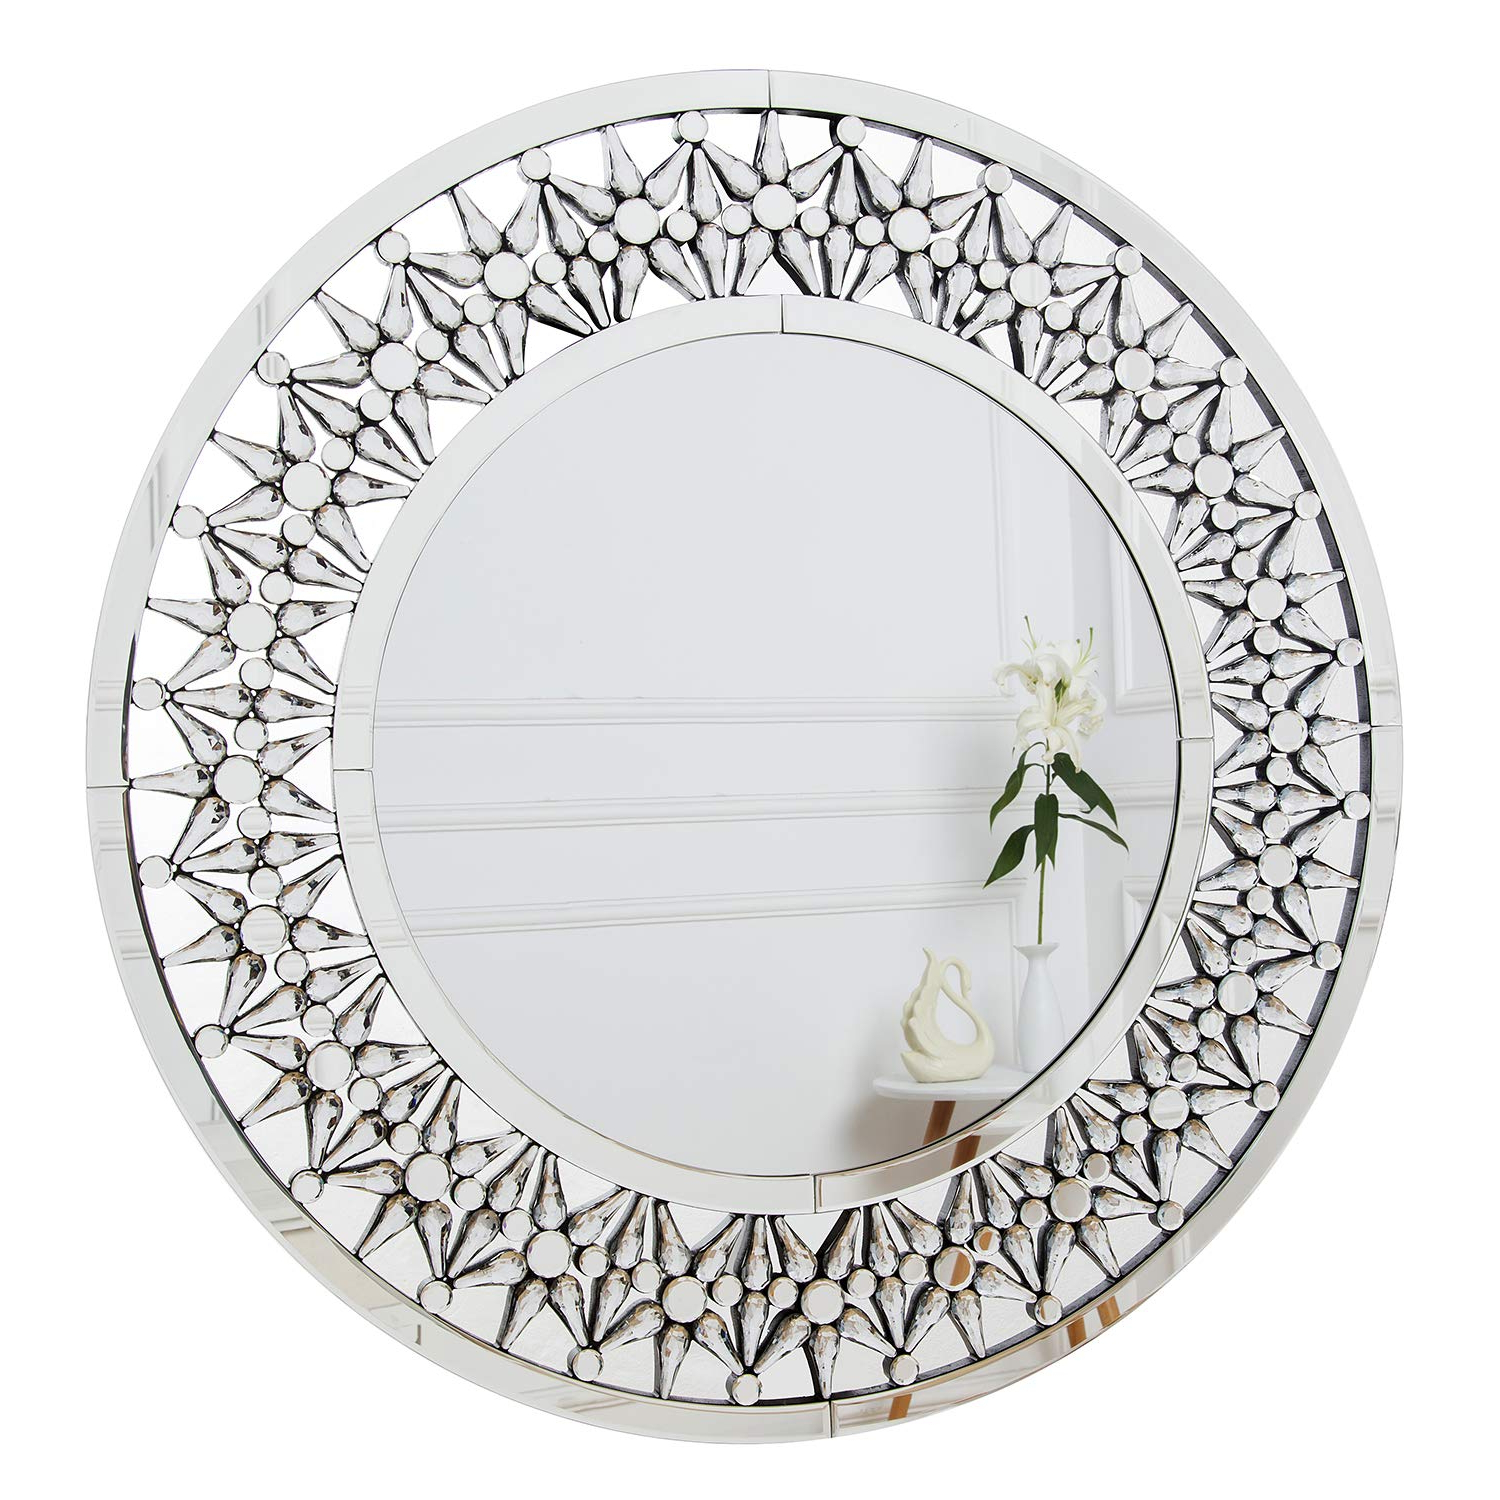 Large Round Wall Mirrors Within Fashionable Richtop Wall Mirror Large Starburst Crystal Mosaic Frame Round Wall Mounted Mirrors For Living Room, Bedroom, Hallway, Kitchen 90cm X 90cm (View 2 of 20)